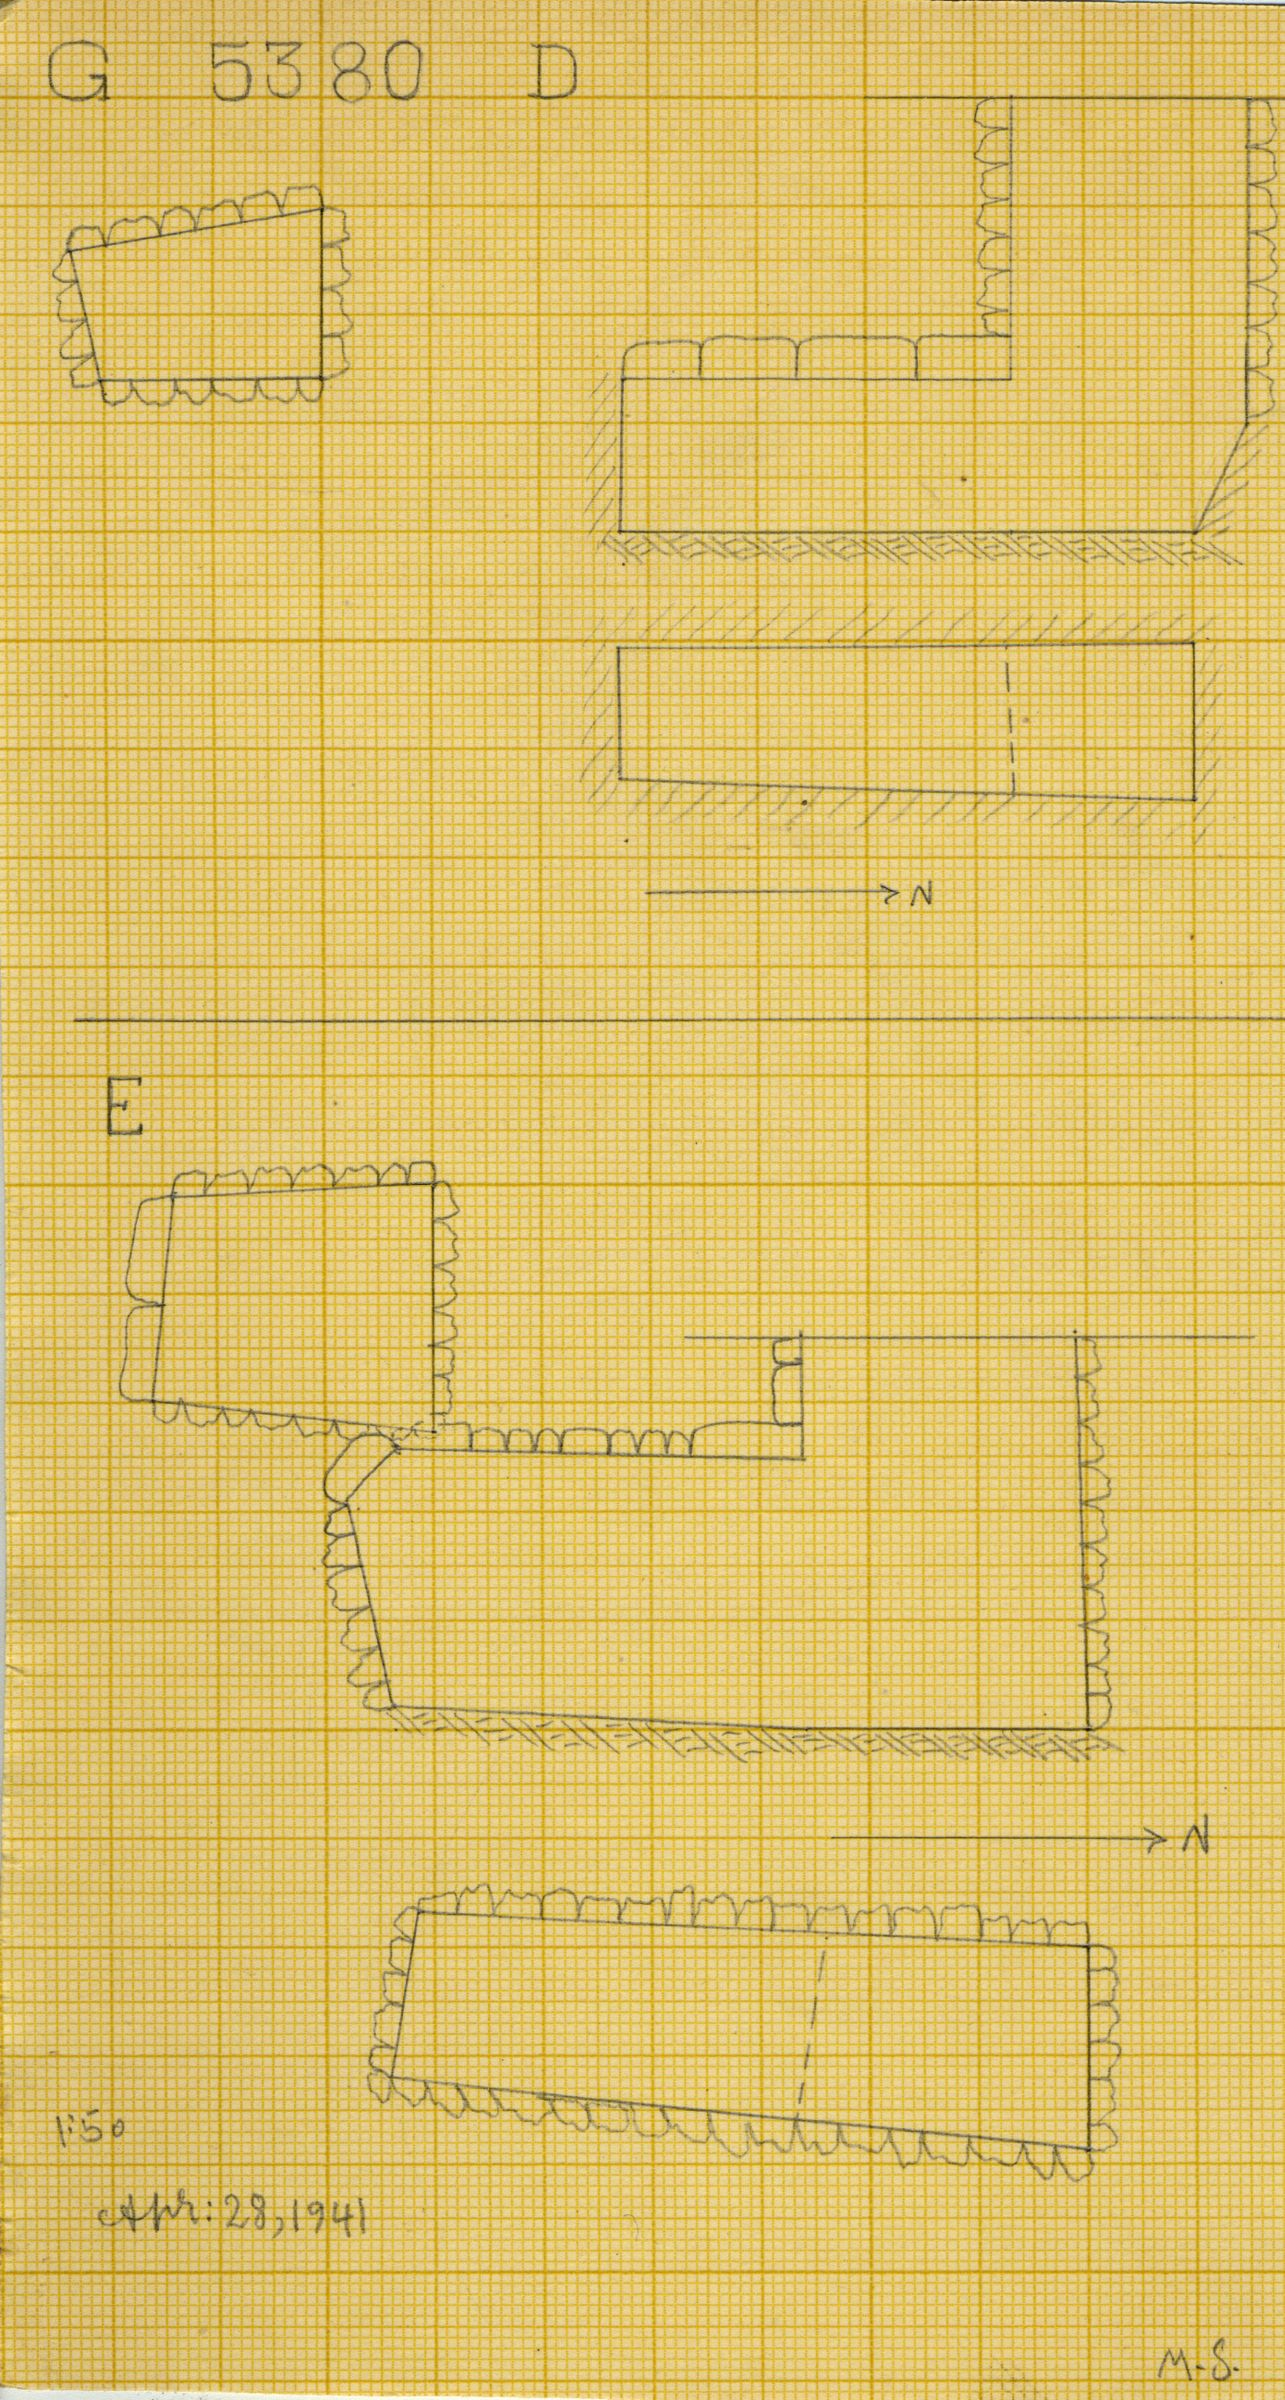 Maps and plans: G 2330 = G 5380, Shaft D and E